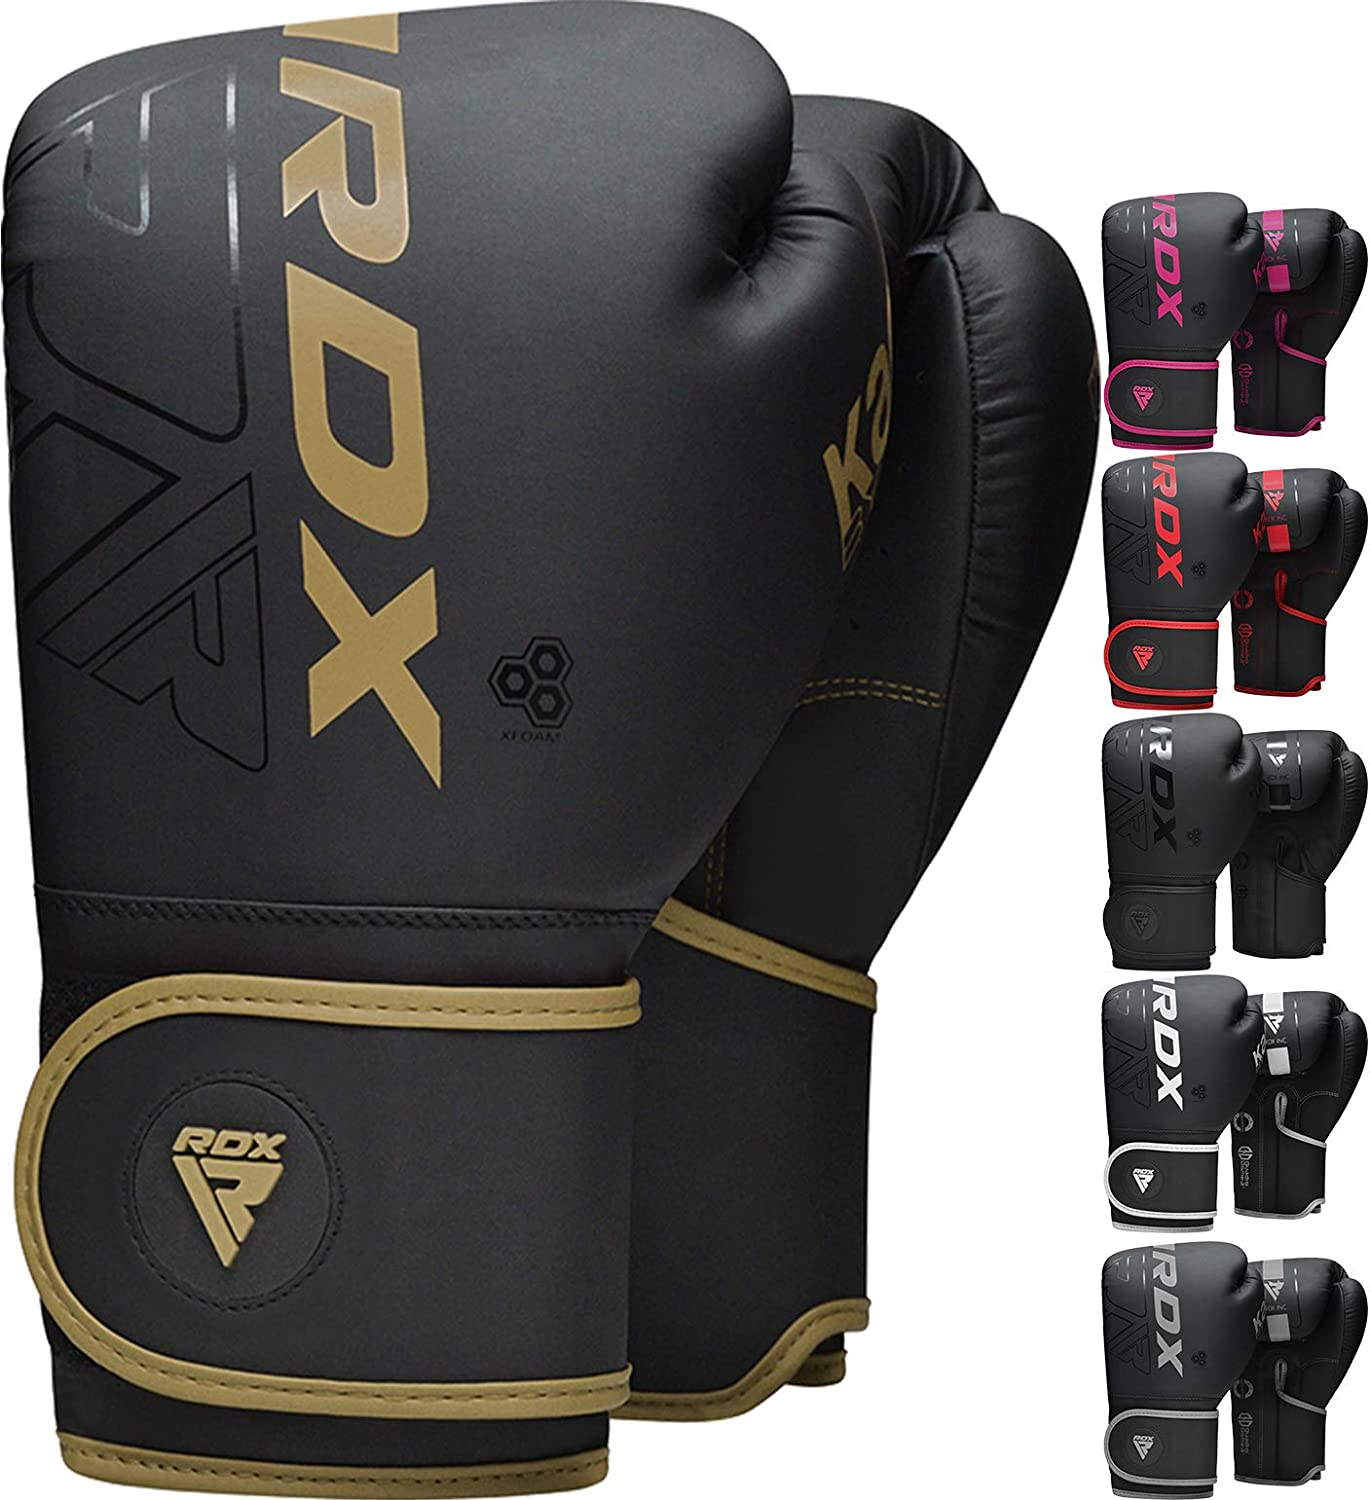 RDX Boxing Gloves Sparring and Muay Thai Maya Hide Leather, Kara Patent Pending Training Mitt for Kickboxing, Punching Bag, Focus Pads, MMA, Thai Pad, Double End Ball Punching Fight Gloves